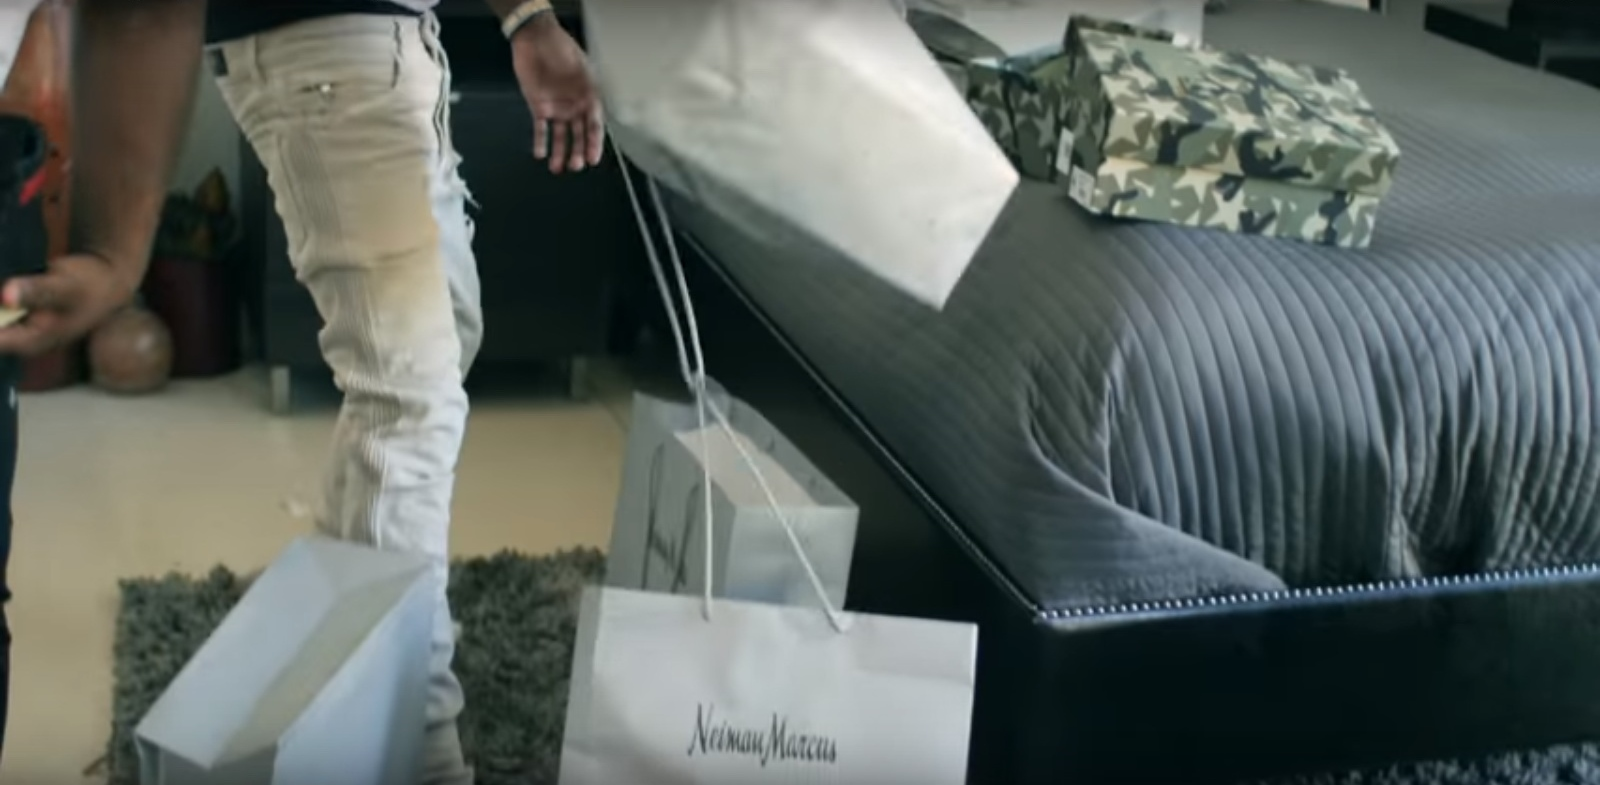 Neiman Marcus – 41 – YoungBoy Never Broke Again (2017) - Official Music Video Product Placement